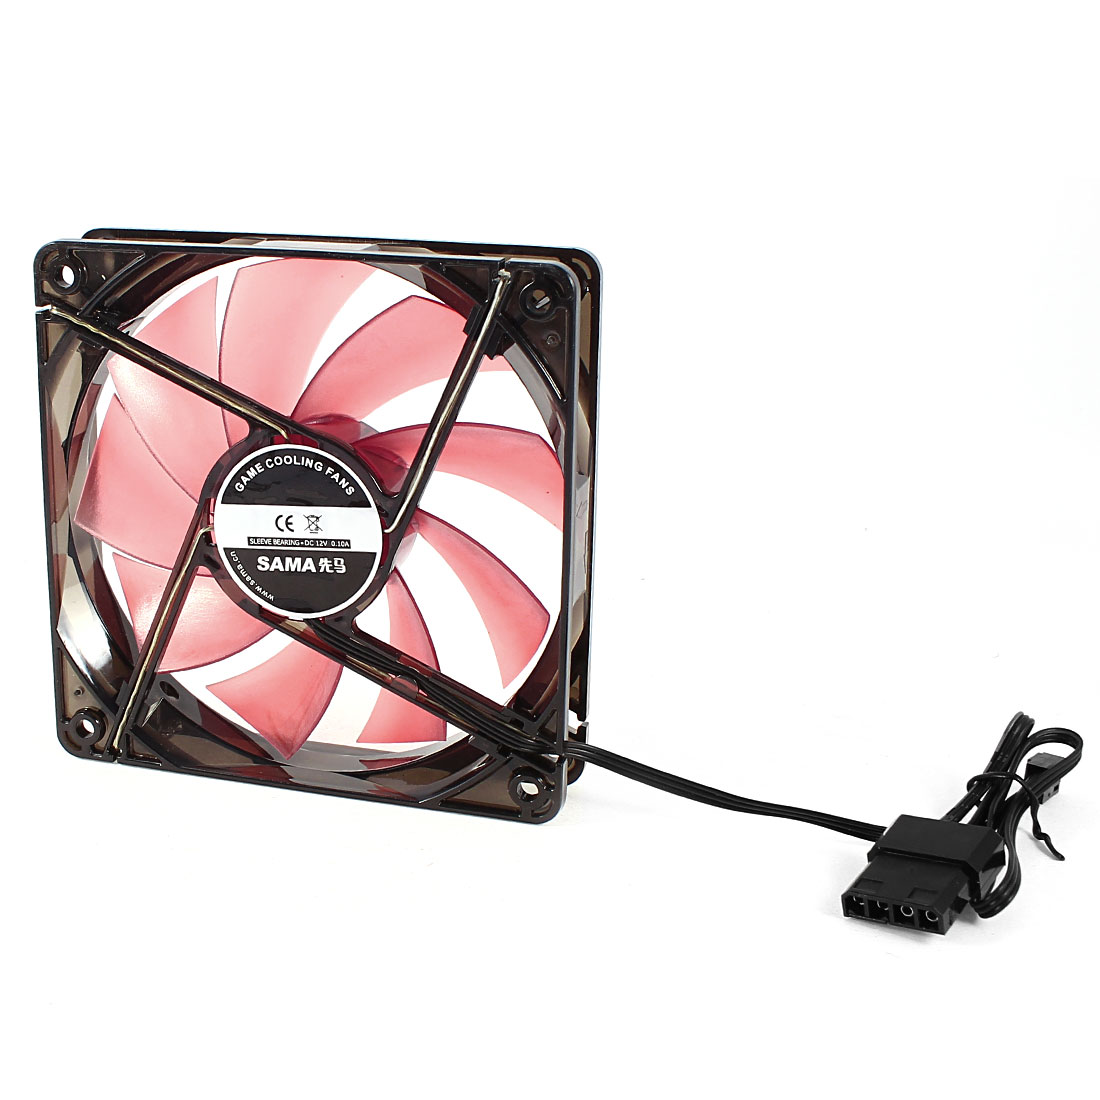 DC 12V 0.10A 120mm 3 Terminals 9 Flabellums Cooling Fan for PC Cases CPU Cooler Radiator